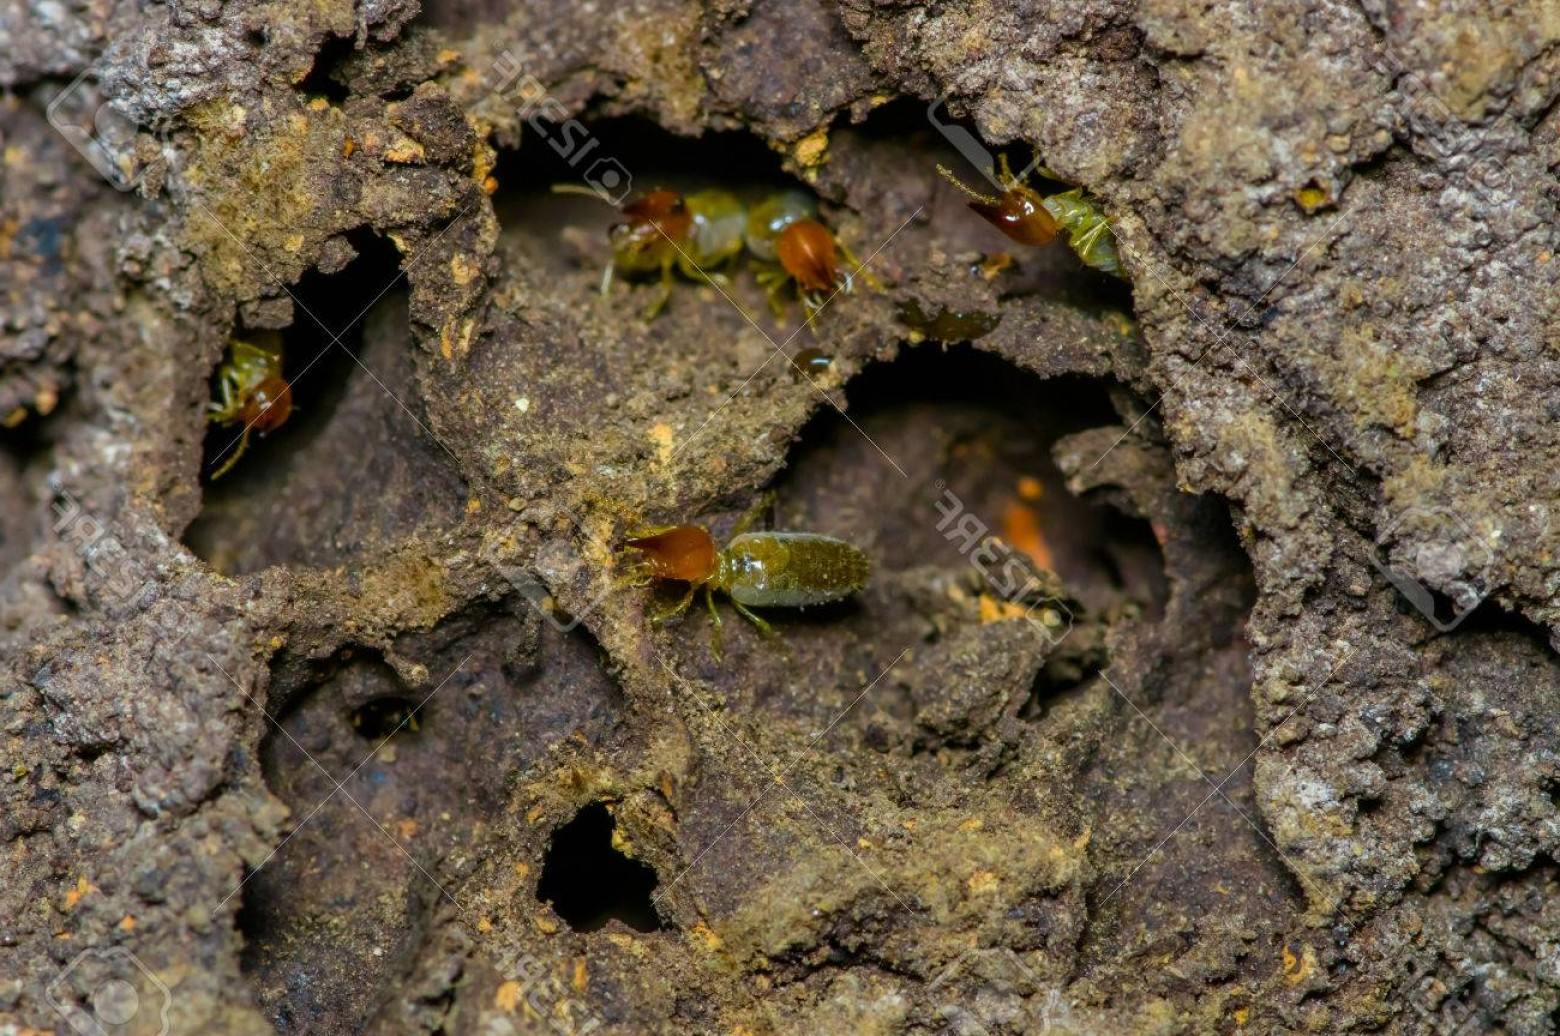 Termites With Wings Vector: Phototermites Insects In Colony Over Wood Inside Of The Amazon Rainforest In Cuyabeno National Park In Ec